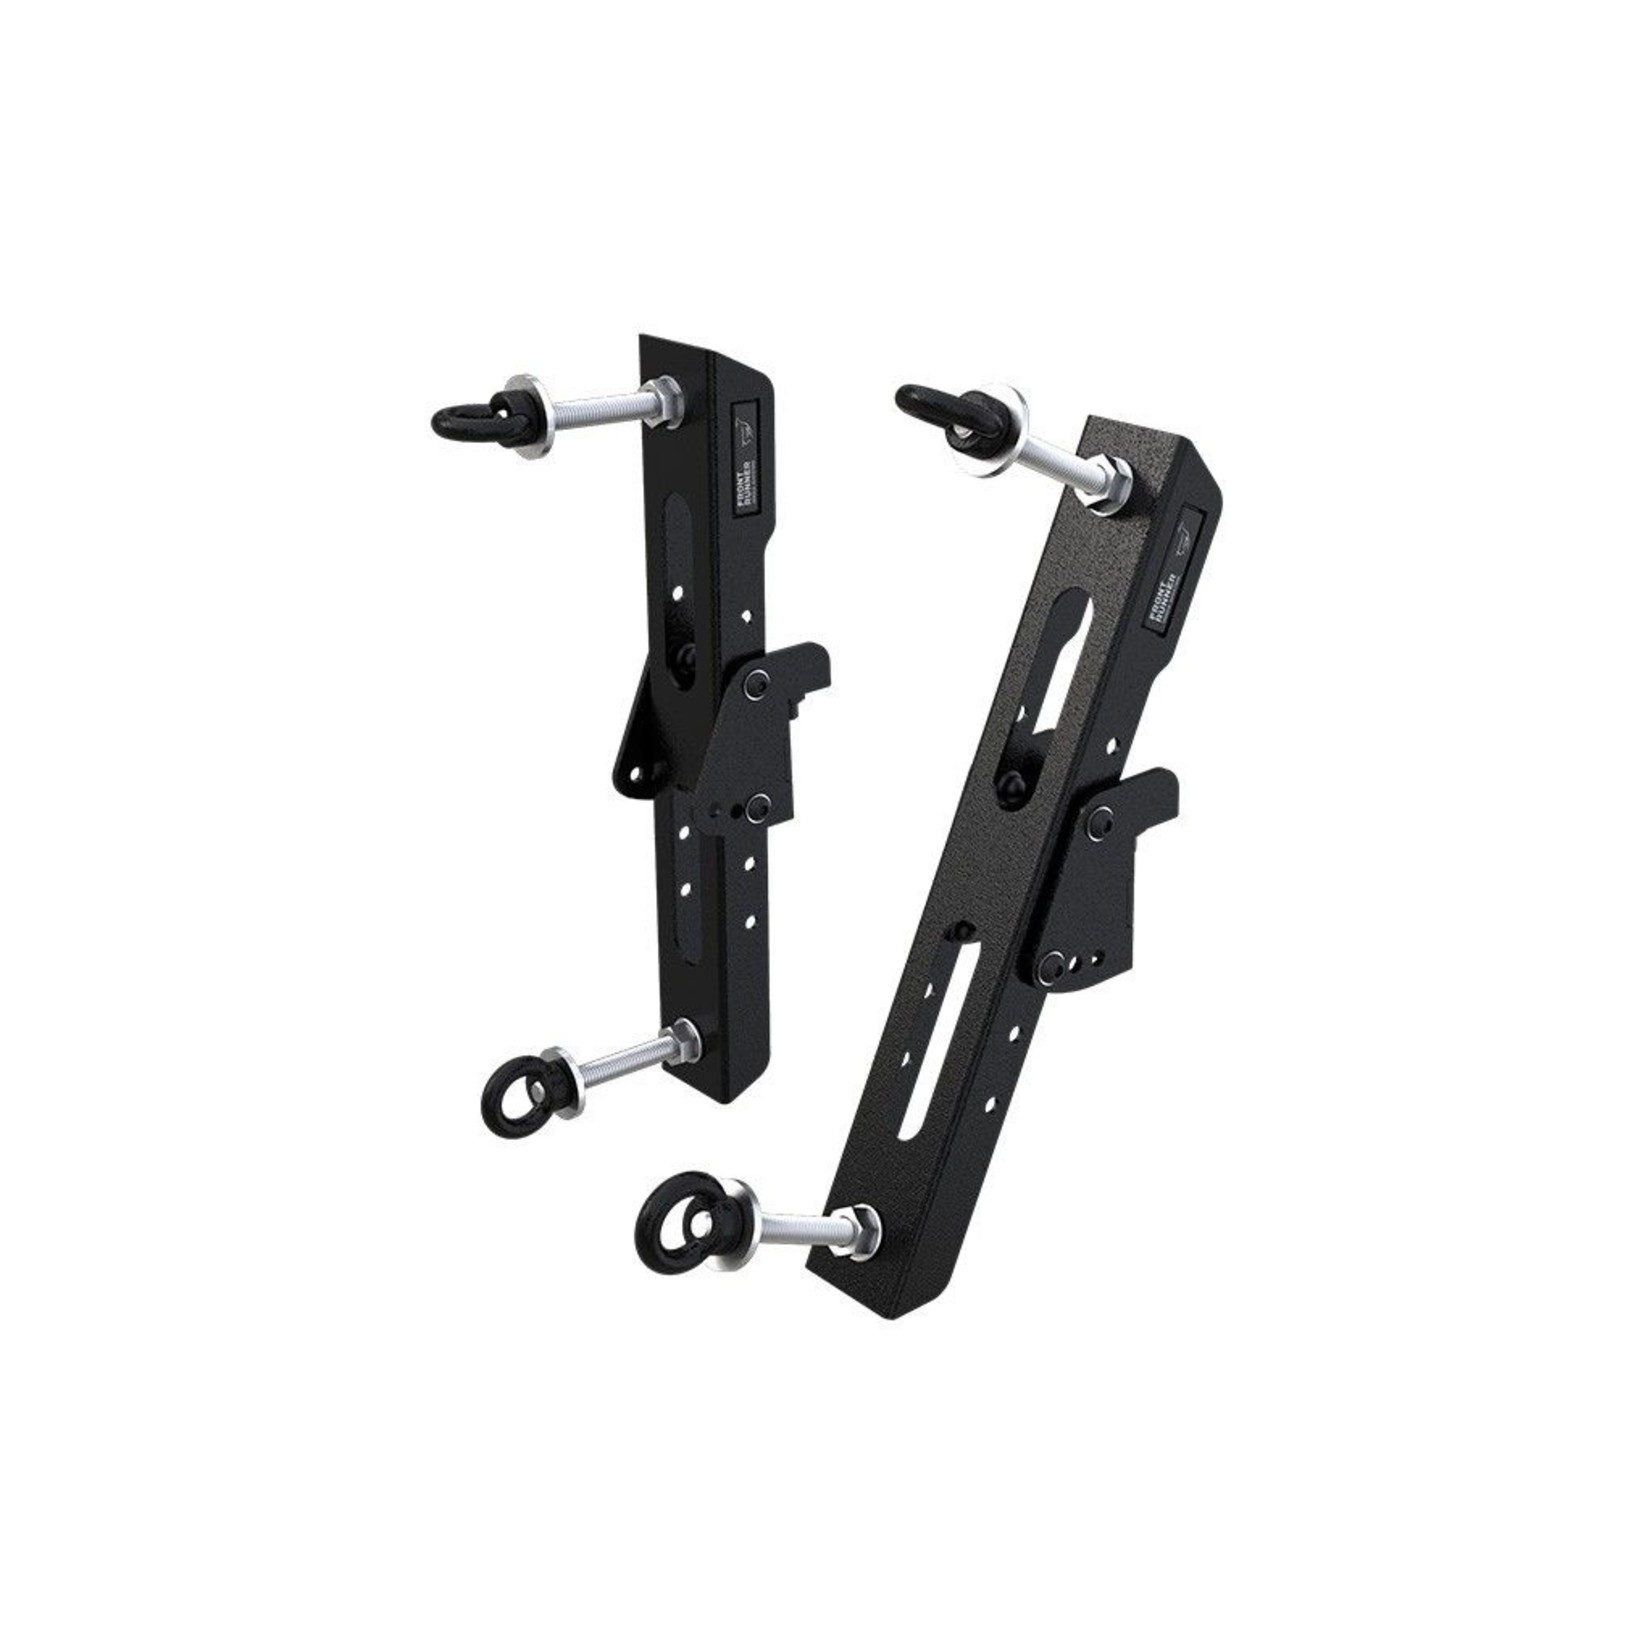 Front Runner Front Runner Recovery Device & Gear Holding Side Bracket